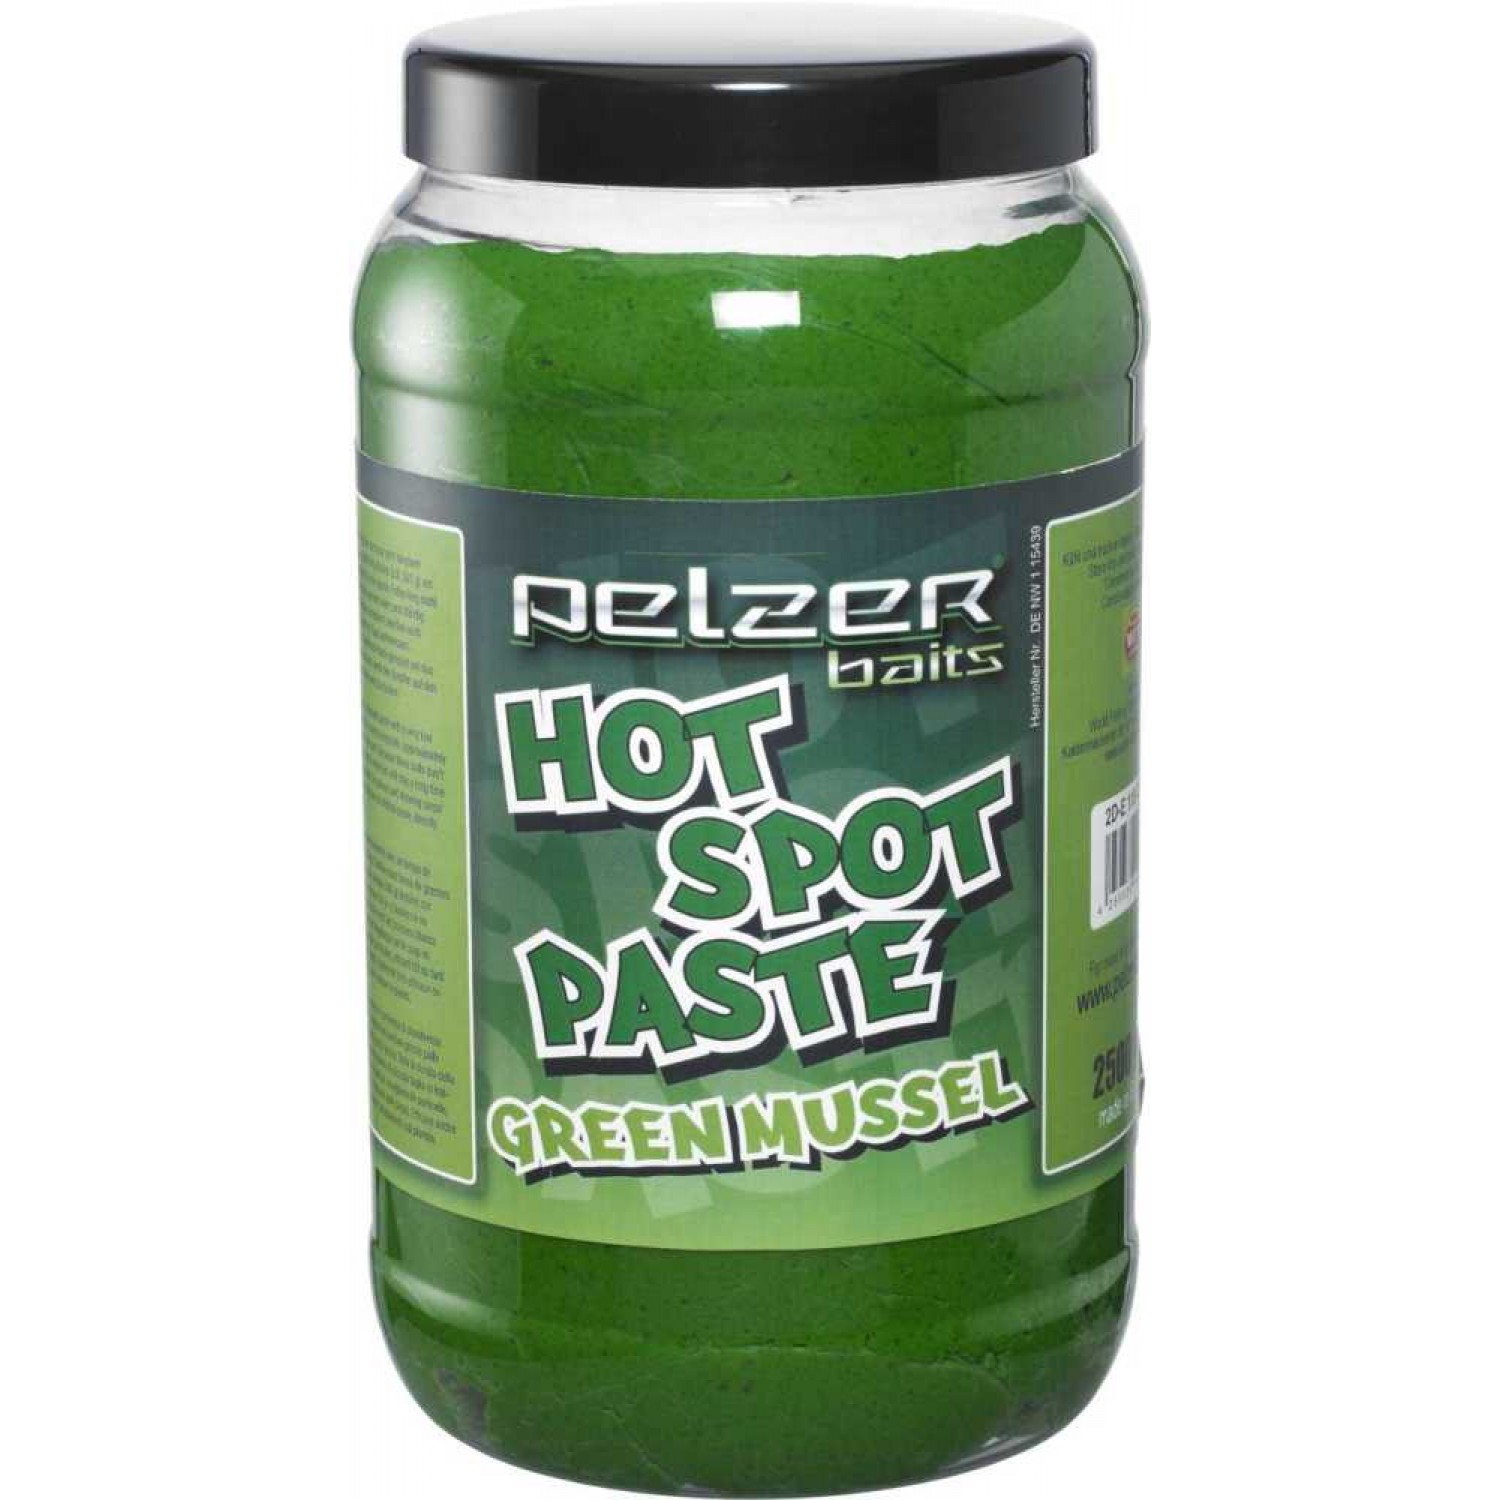 Pelzer Hot Spot Paste 2.5kg